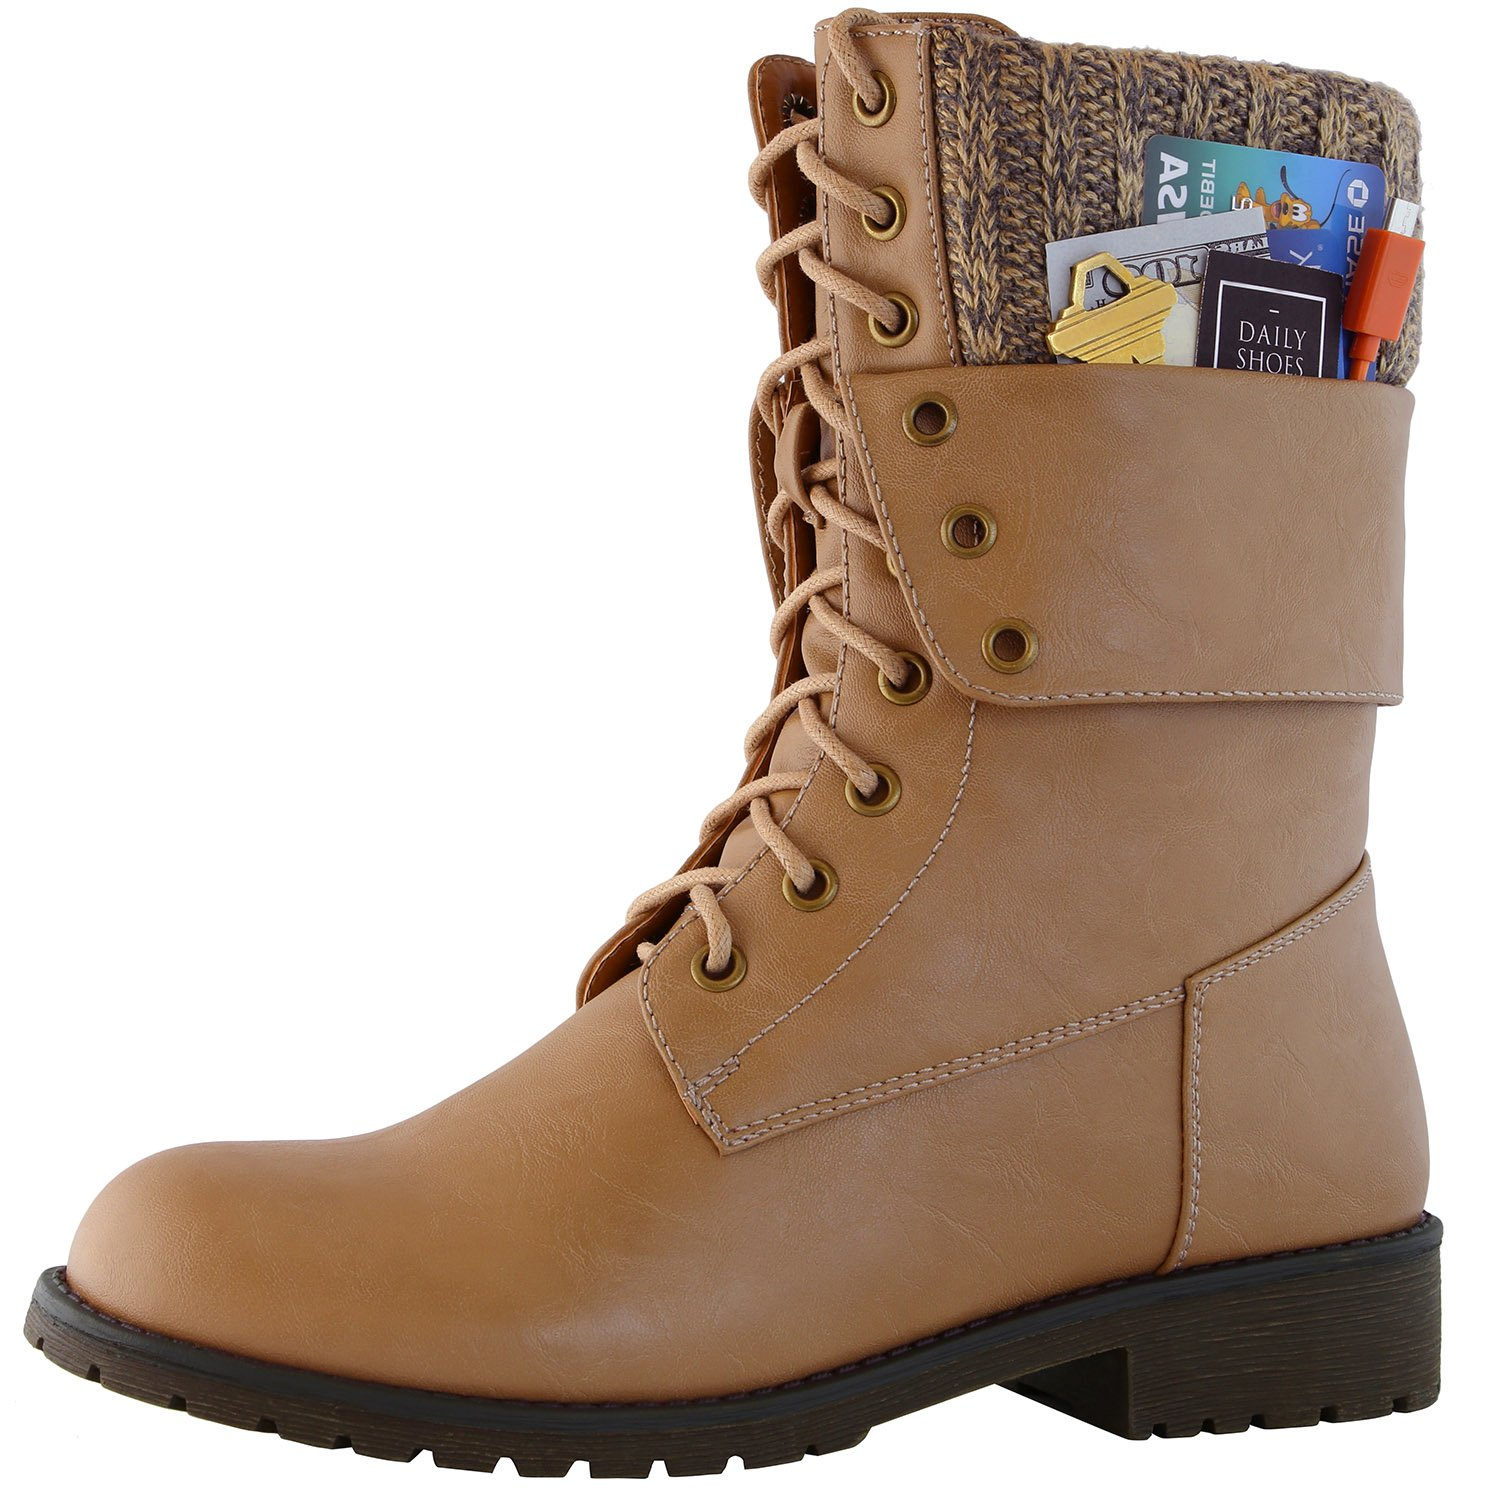 DailyShoes Womens Military Lace up Buckle Combat Boots Ankle Mid Calf Fold-Down Exclusive Credit Card Pocket, Beige Pu, 5